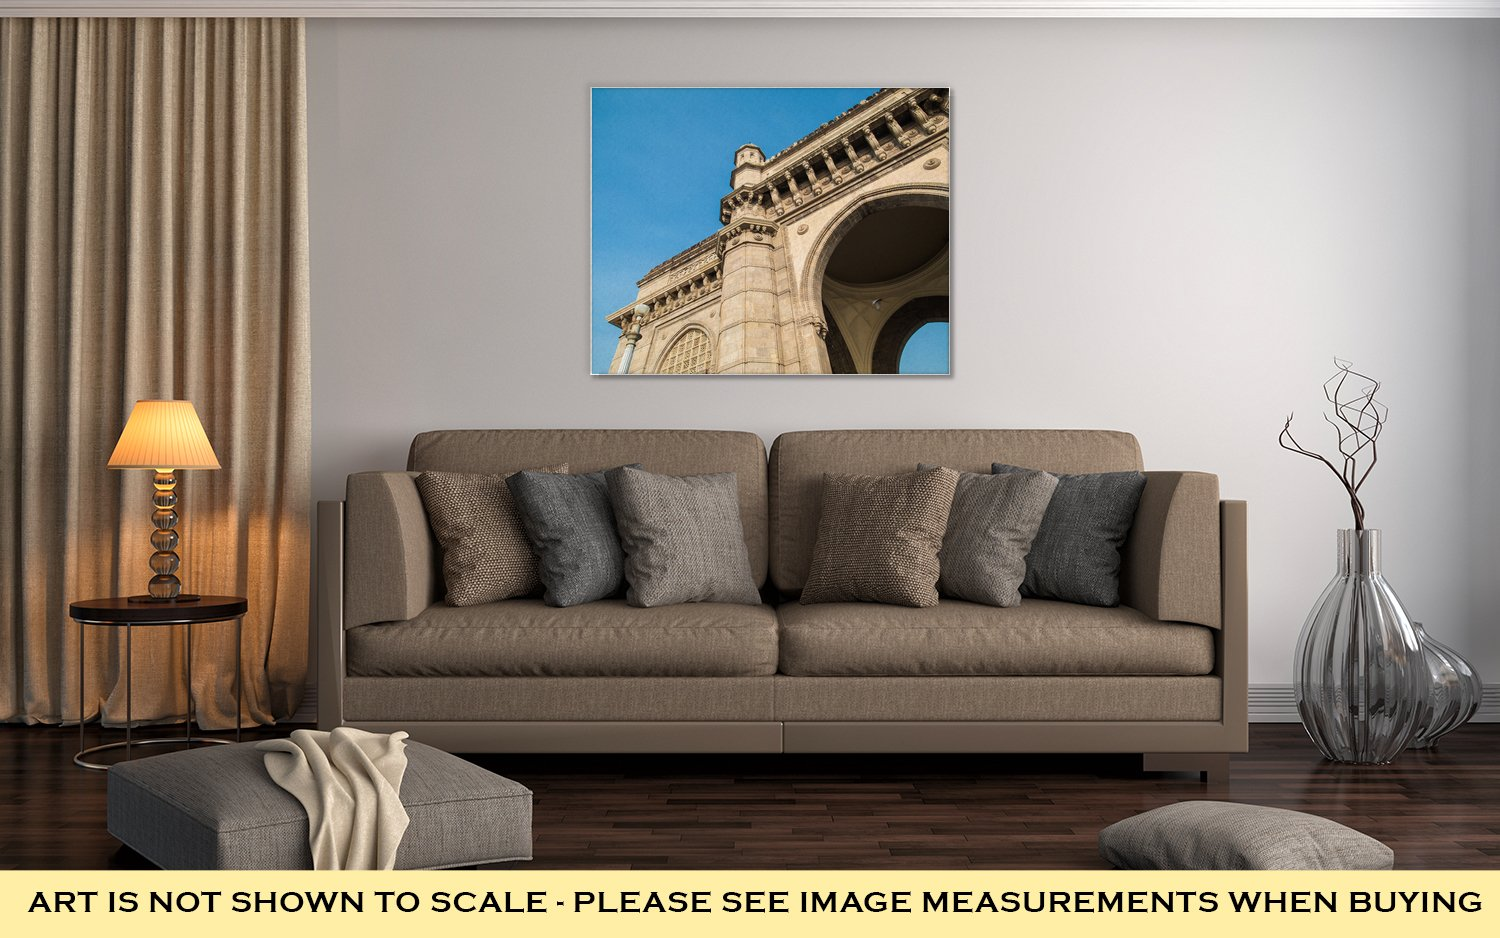 Ashley Canvas The Gateway Of India A Monument Built During The British Raj In Mumbai, Kitchen Bedroom Living Room Art, Color 24x30, AG5933218